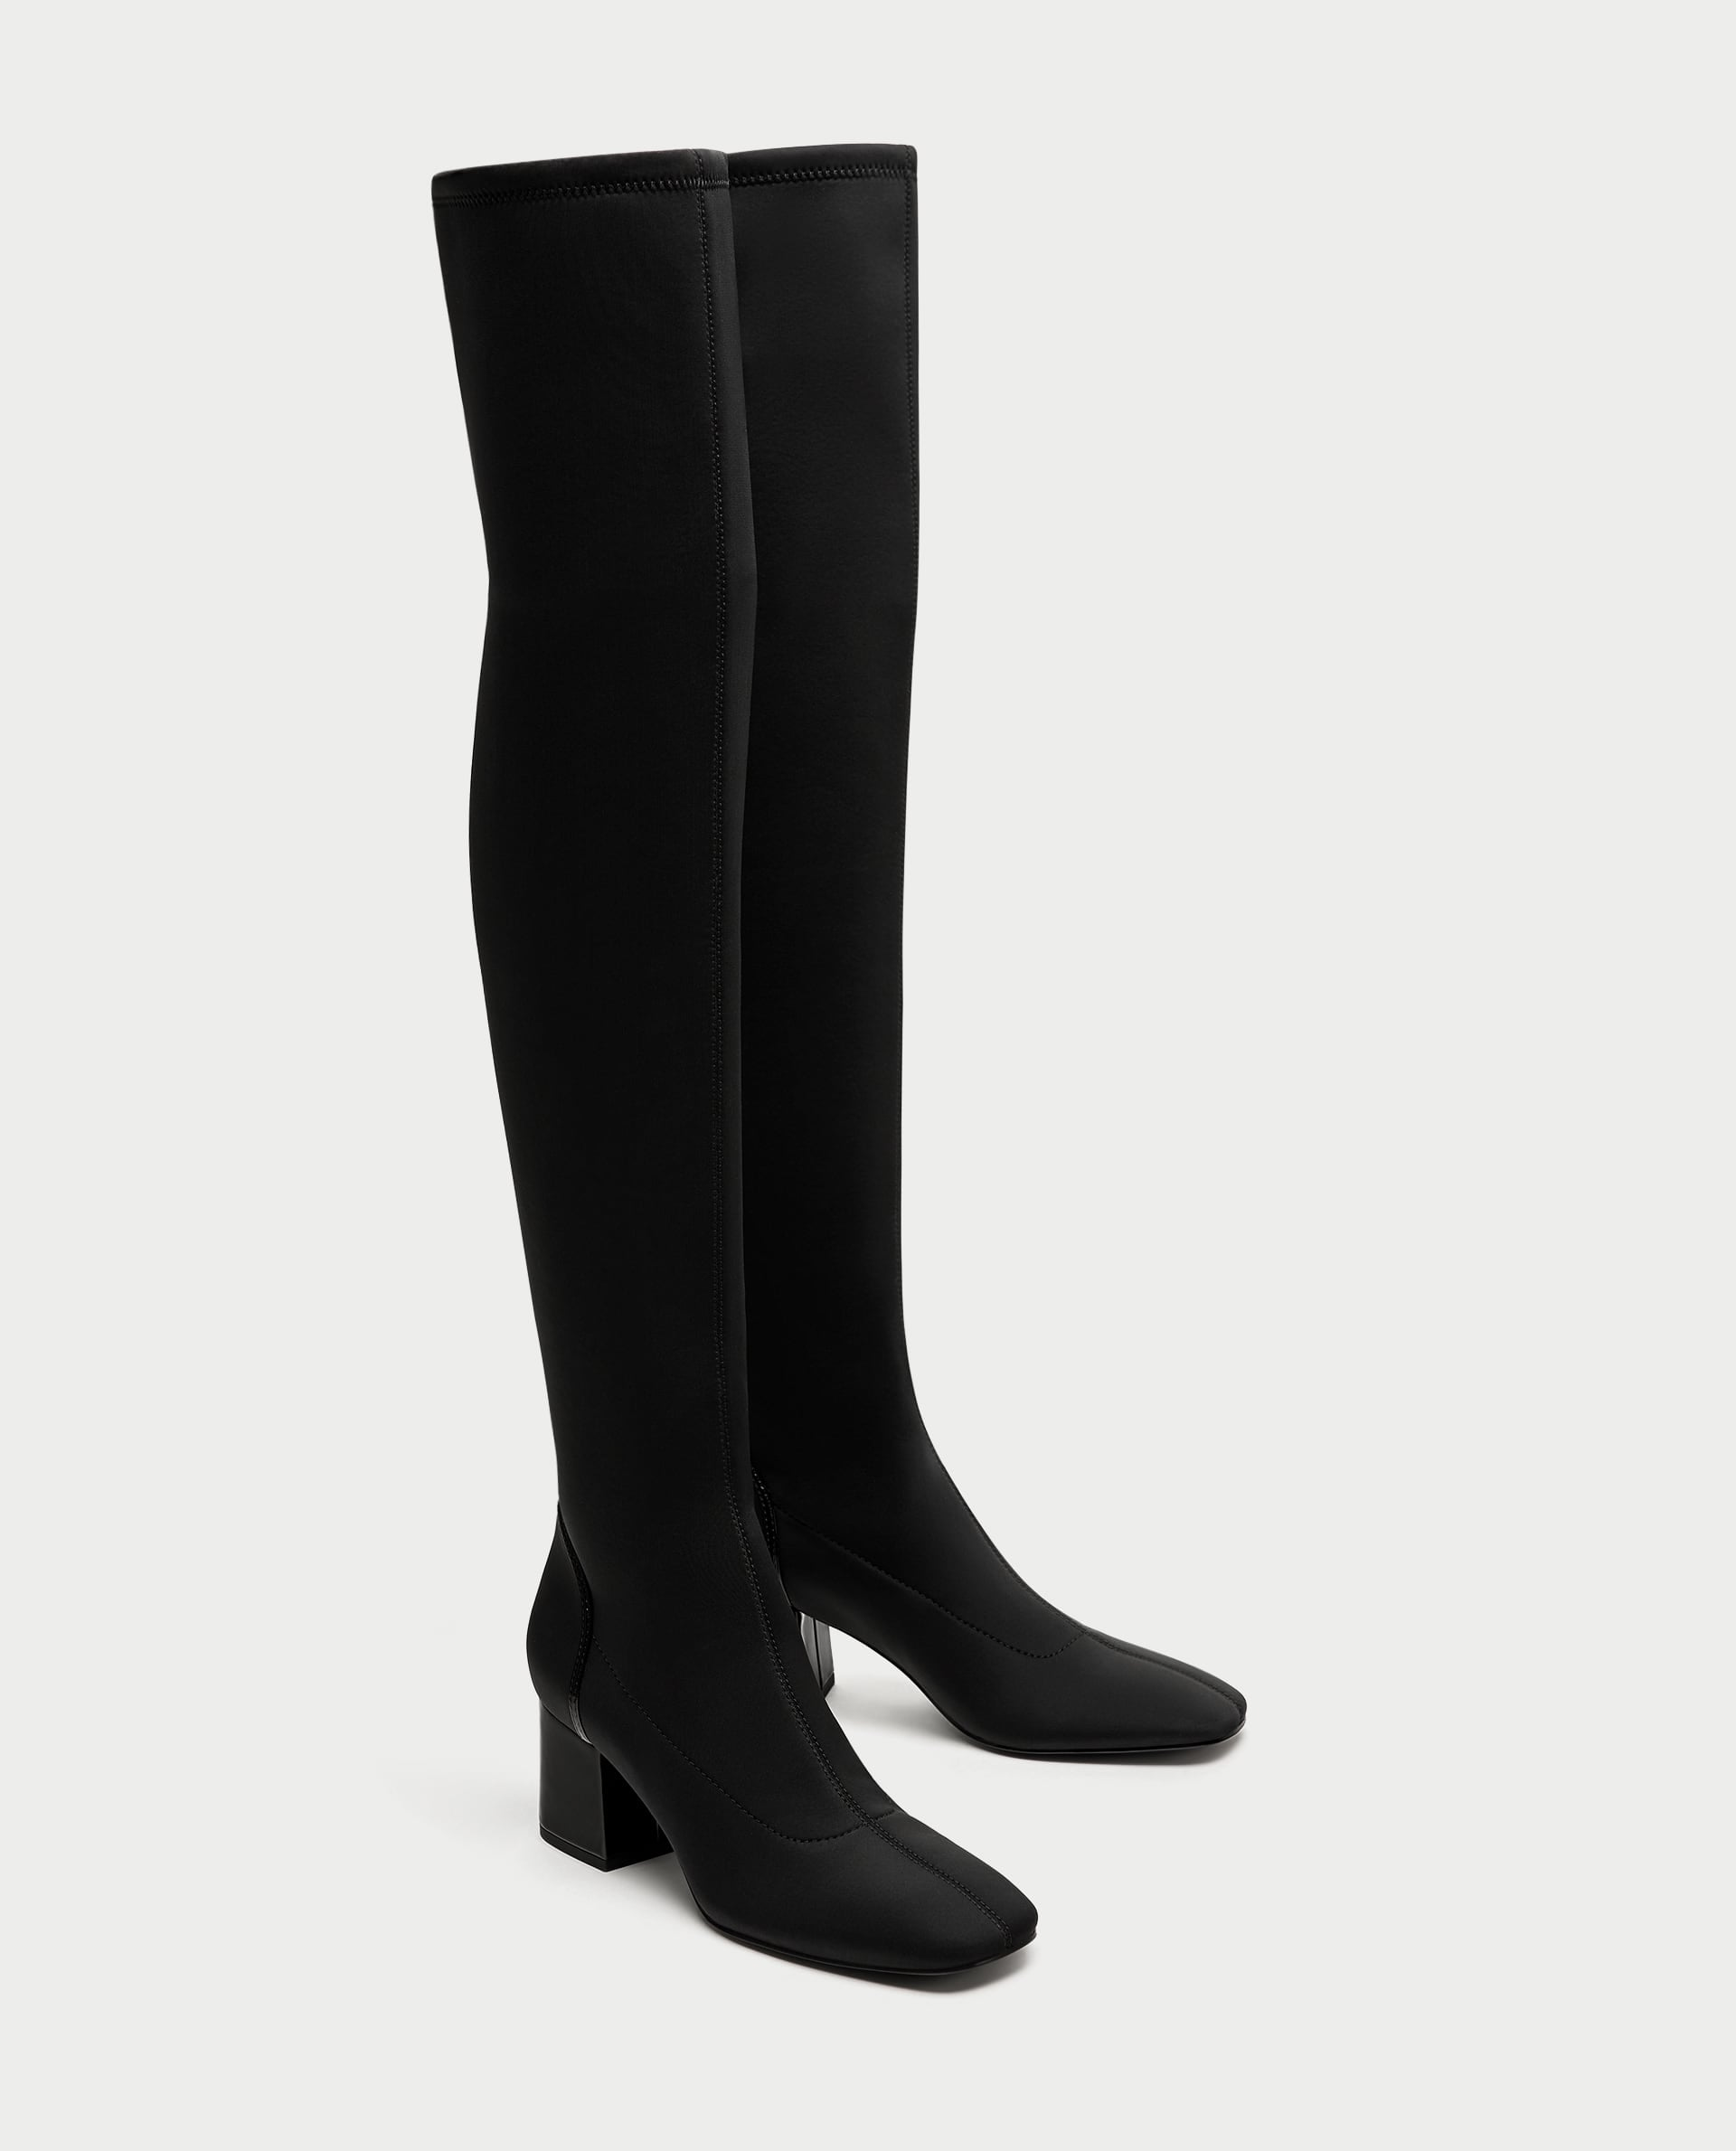 Zara Over-the-Knee Fabric Boots   50